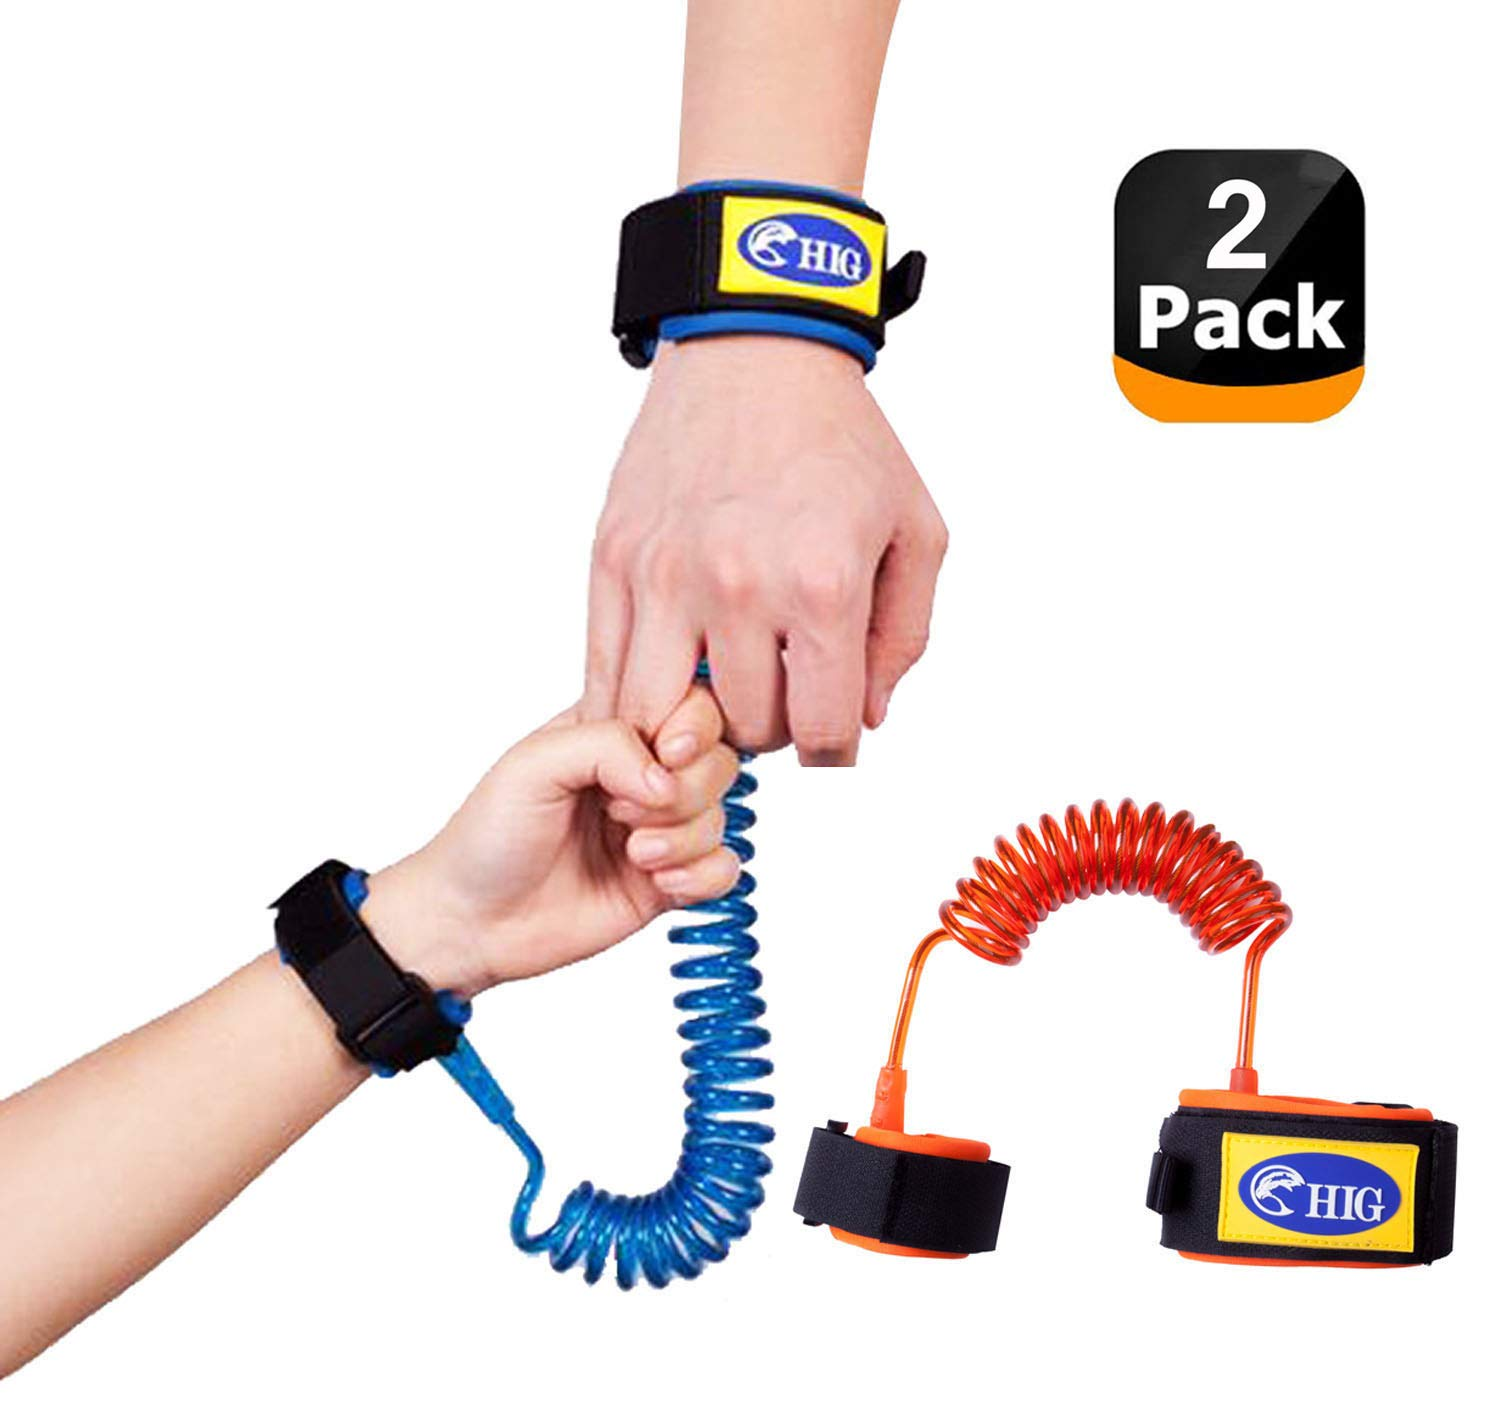 HIG Toddler Leash Anti Lost Wrist Link Safety Kid Leash Harness for Toddlers,Kids & Babies, Toddler Wrist Harness Safety Wrist Leashes by HIG